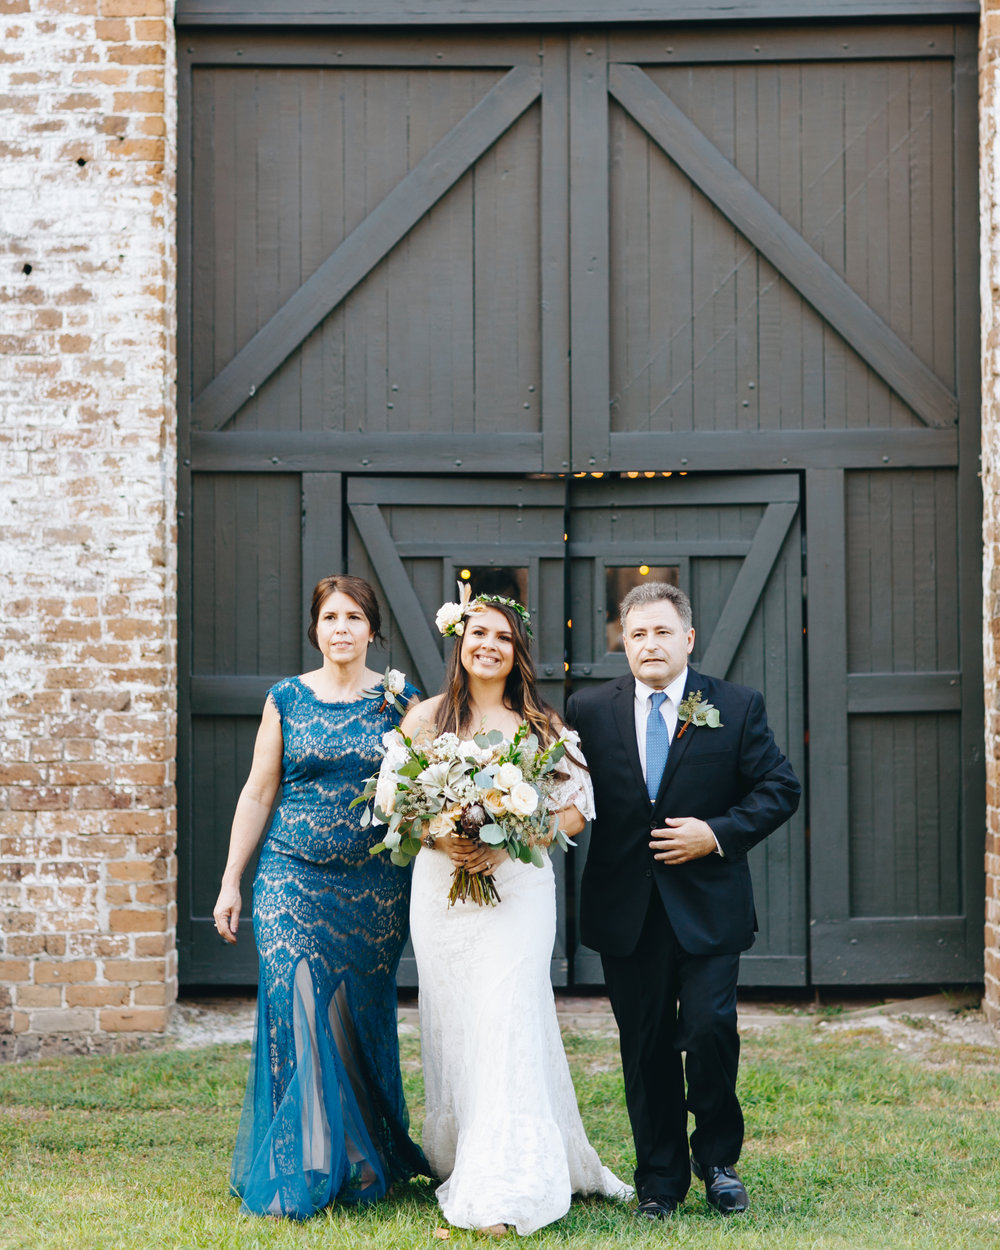 darling-juliet-photography-ivory-and-beau-bridal-boutique-savannah-wedding-dresses-savannah-bridal-gowns-daughters-of-simone-winnie-savannah-florist-boho-wedding-savannah-boho-wedding-roundhouse-railroad-musuem-wedding-21.jpg